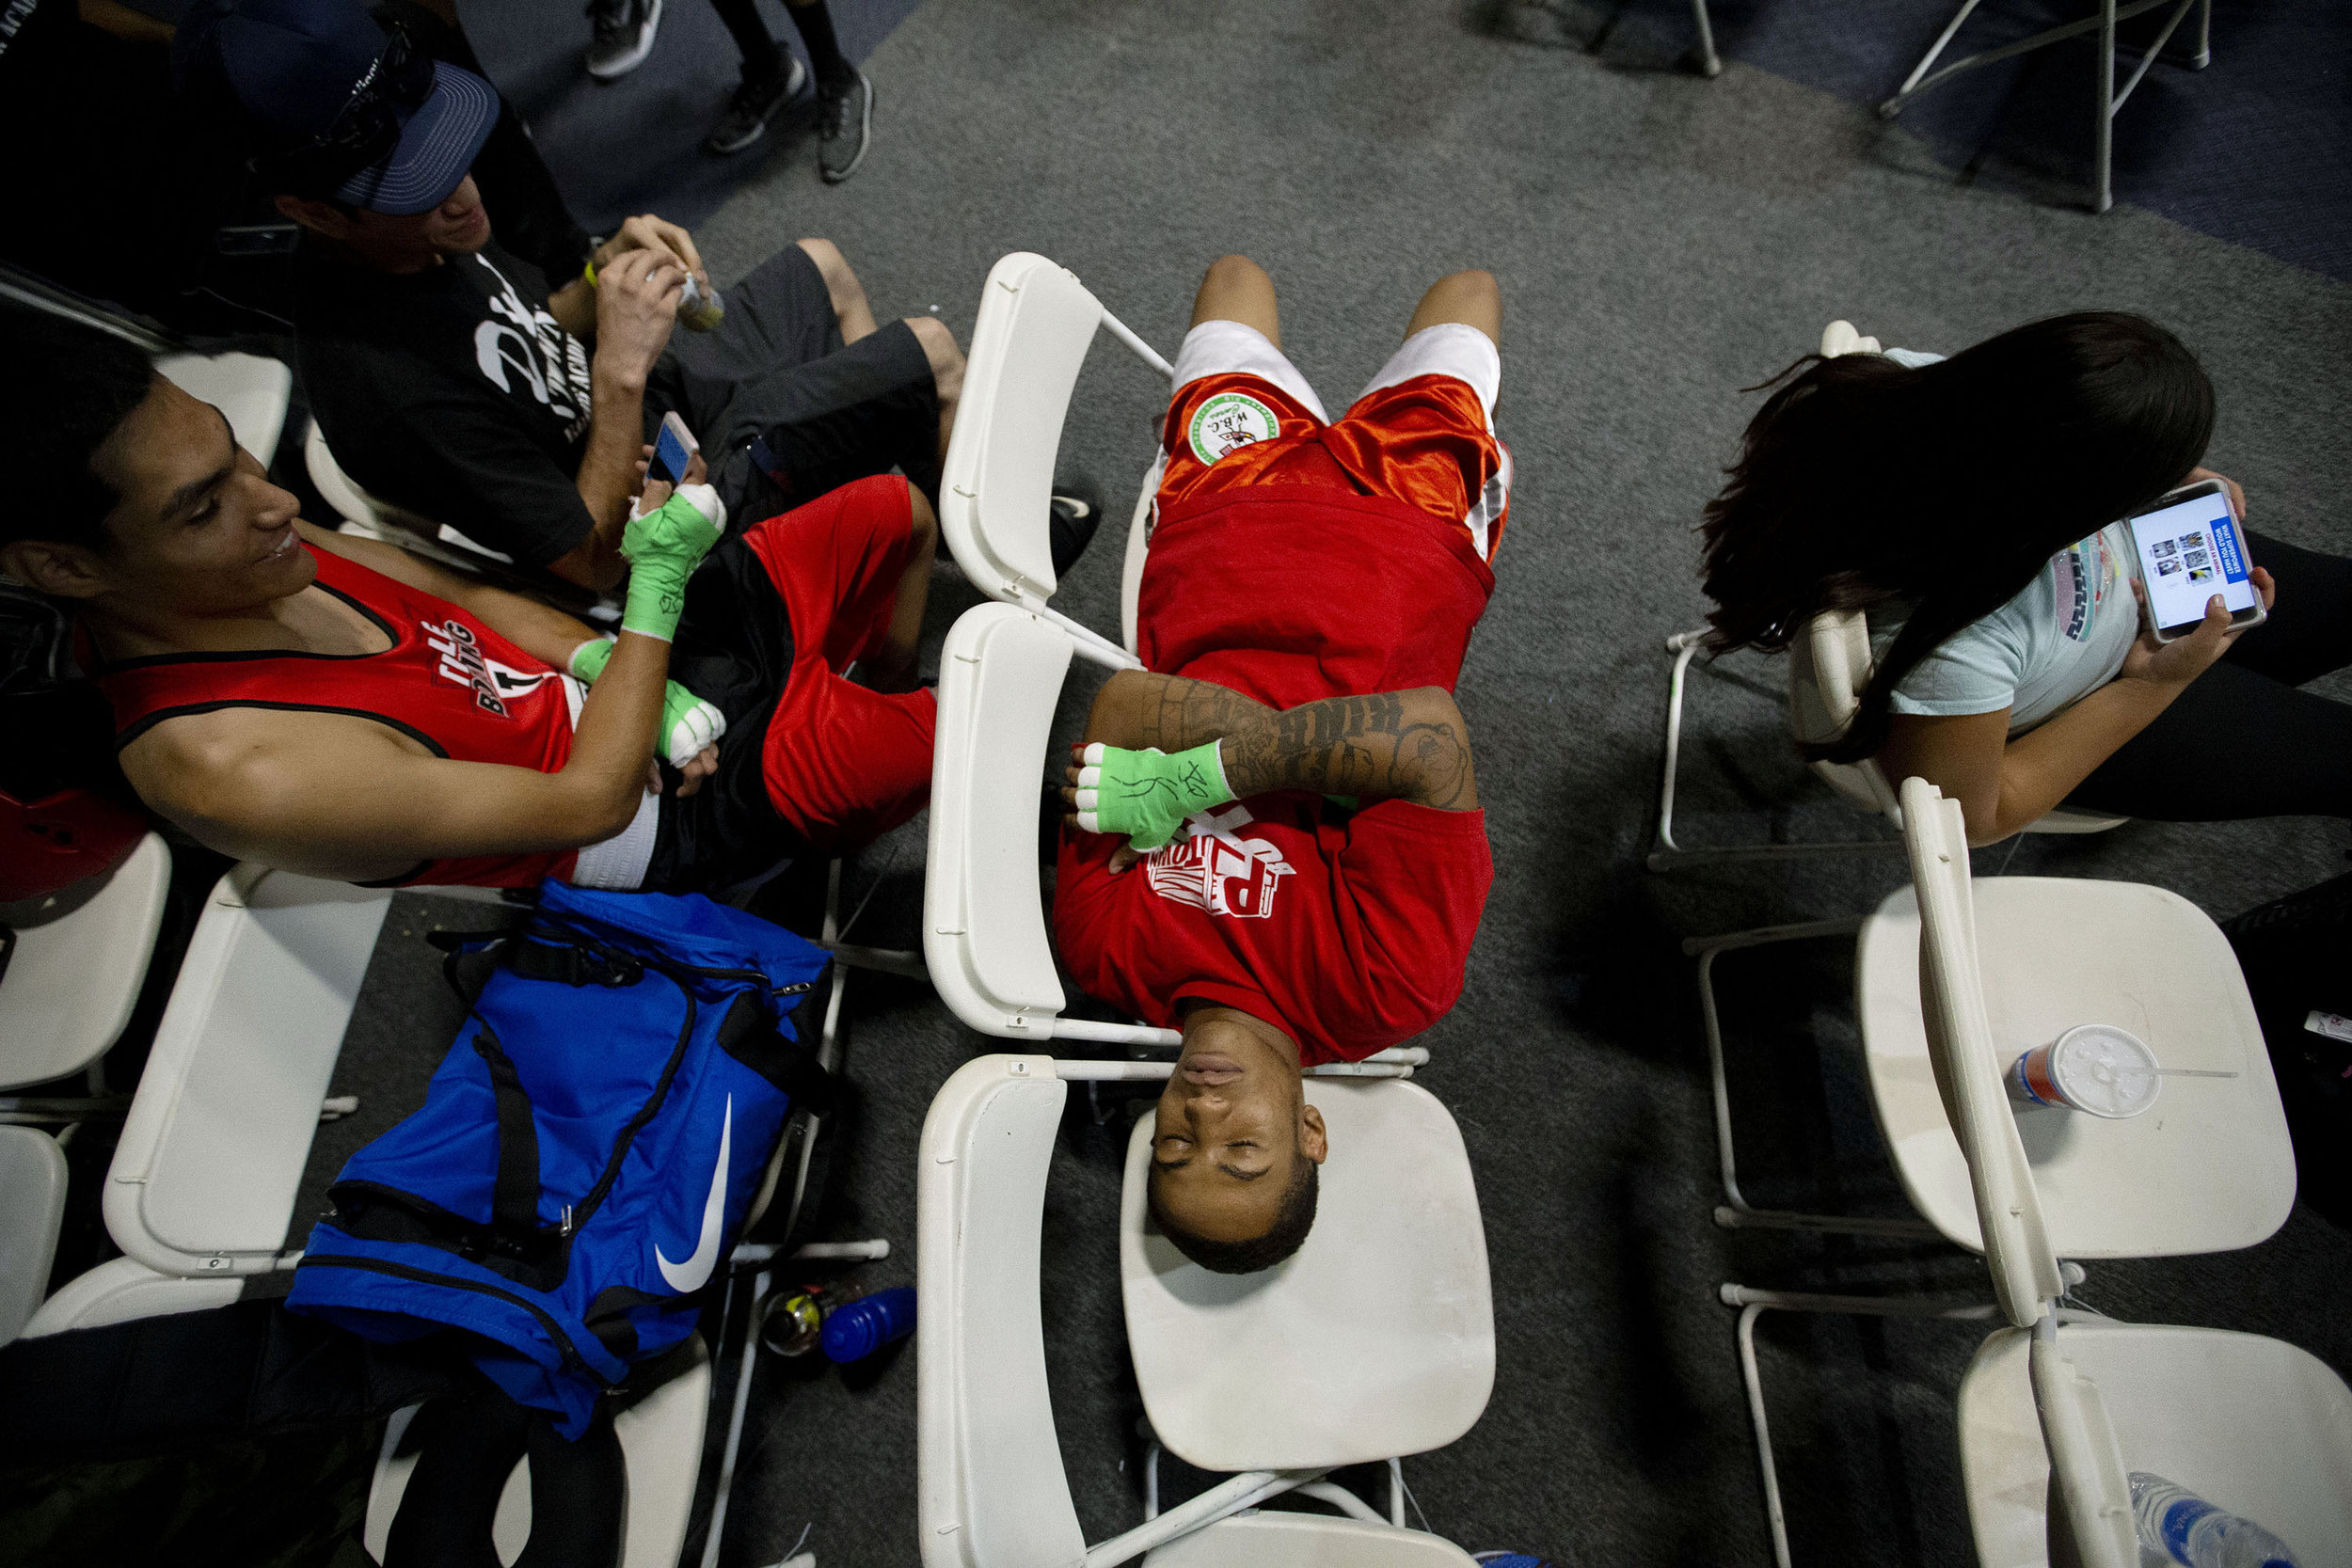 P-Town Boxing's William King finds time nap as he waits for his bout which is the 15th of the day during the Future Olympics Champions at  Lake Perris Sports Pavilion in Perris on Saturday, August 18, 2018.